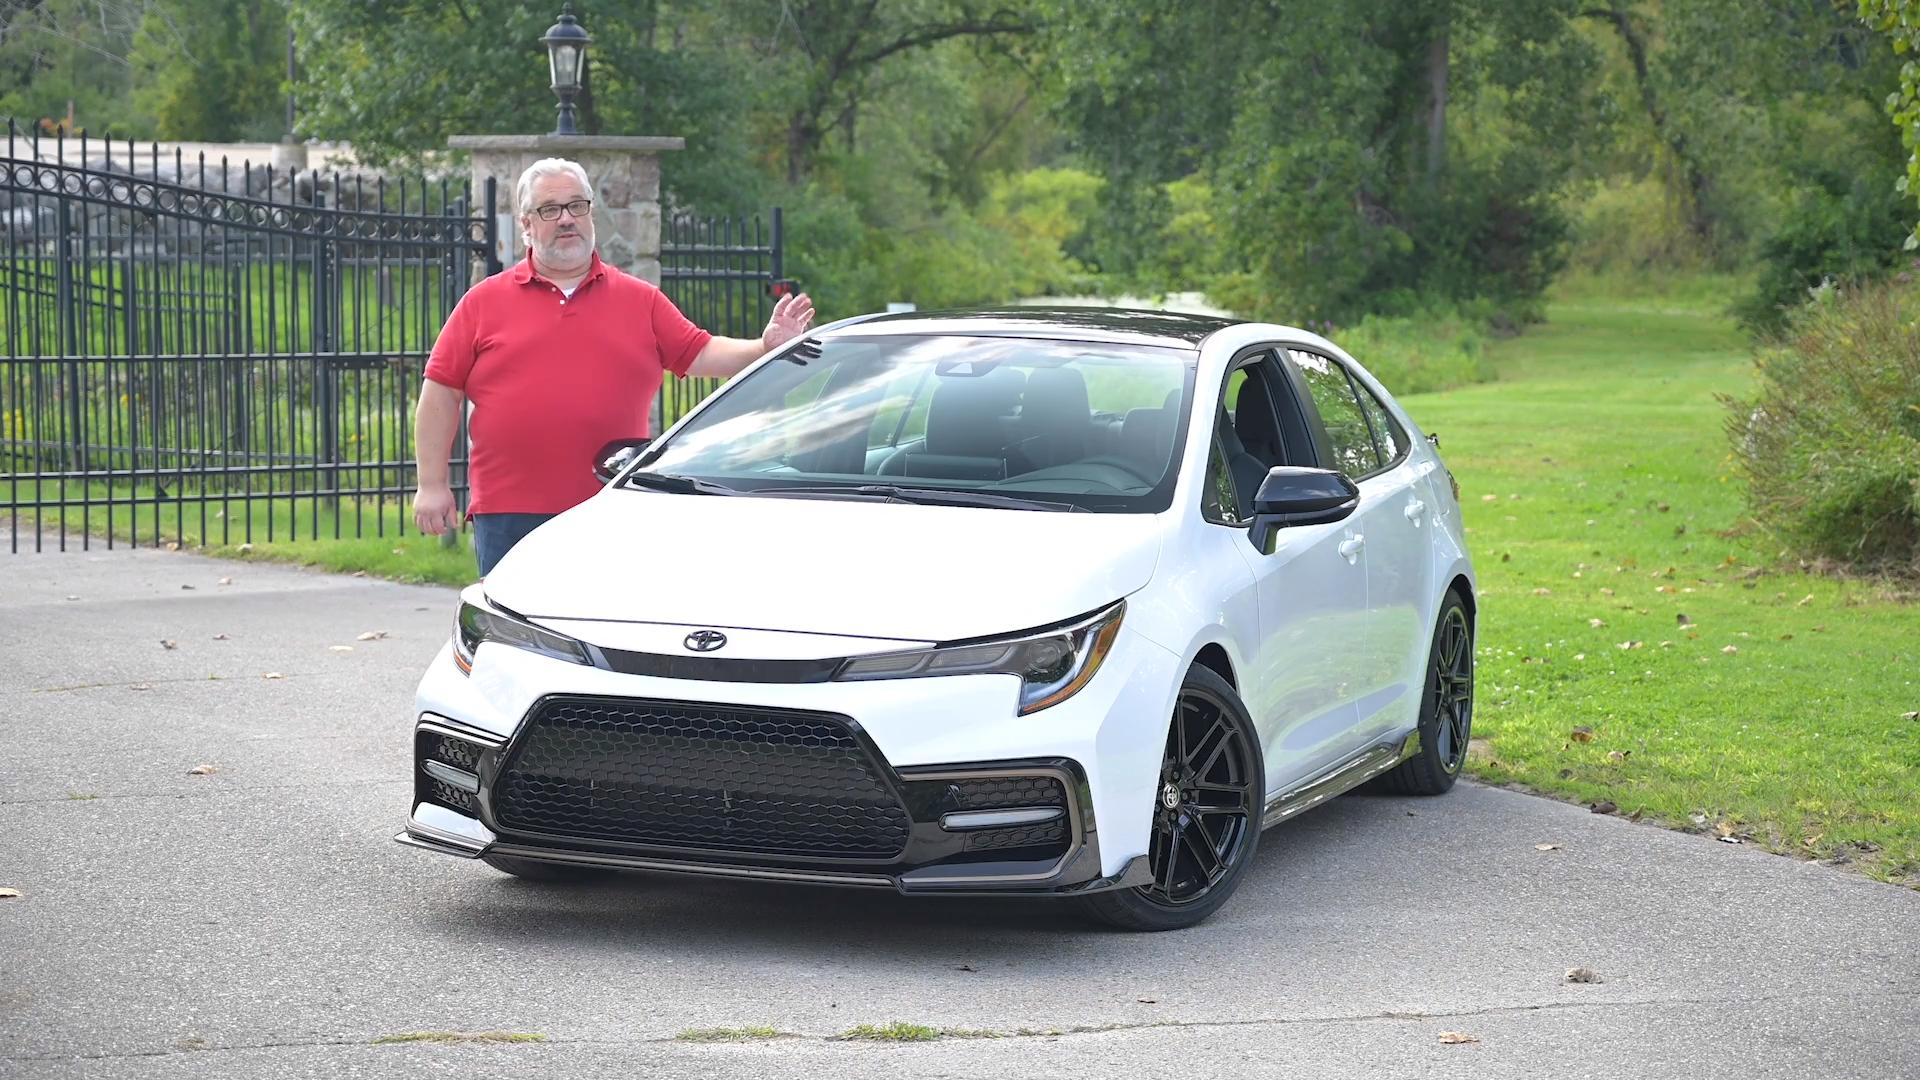 2021 Toyota Corolla Apex: Review — Cars.com Video